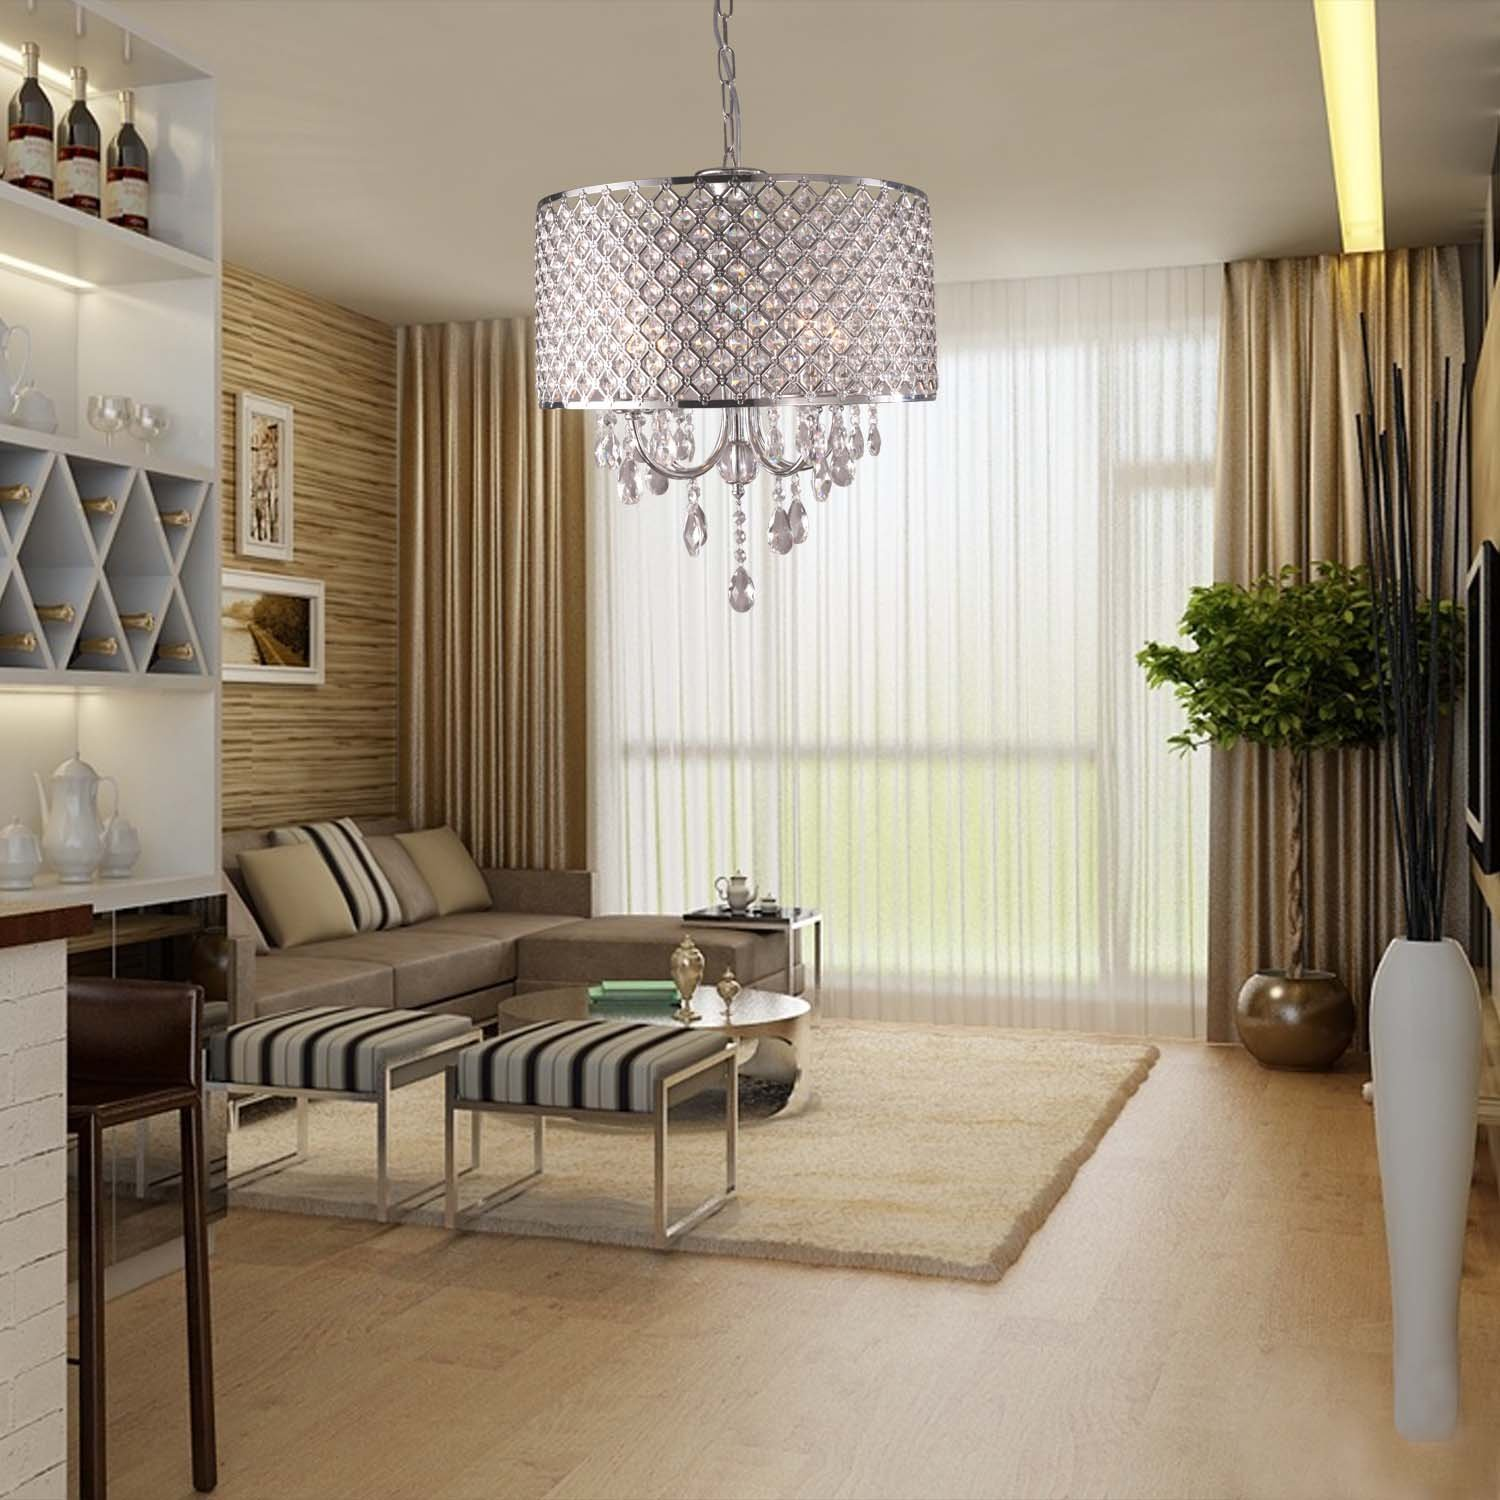 lightinthebox modern chandeliers with 4 lights pendant light with crystal drops in round ceiling light fixture for dining room bedroom chandelier pendant lighting